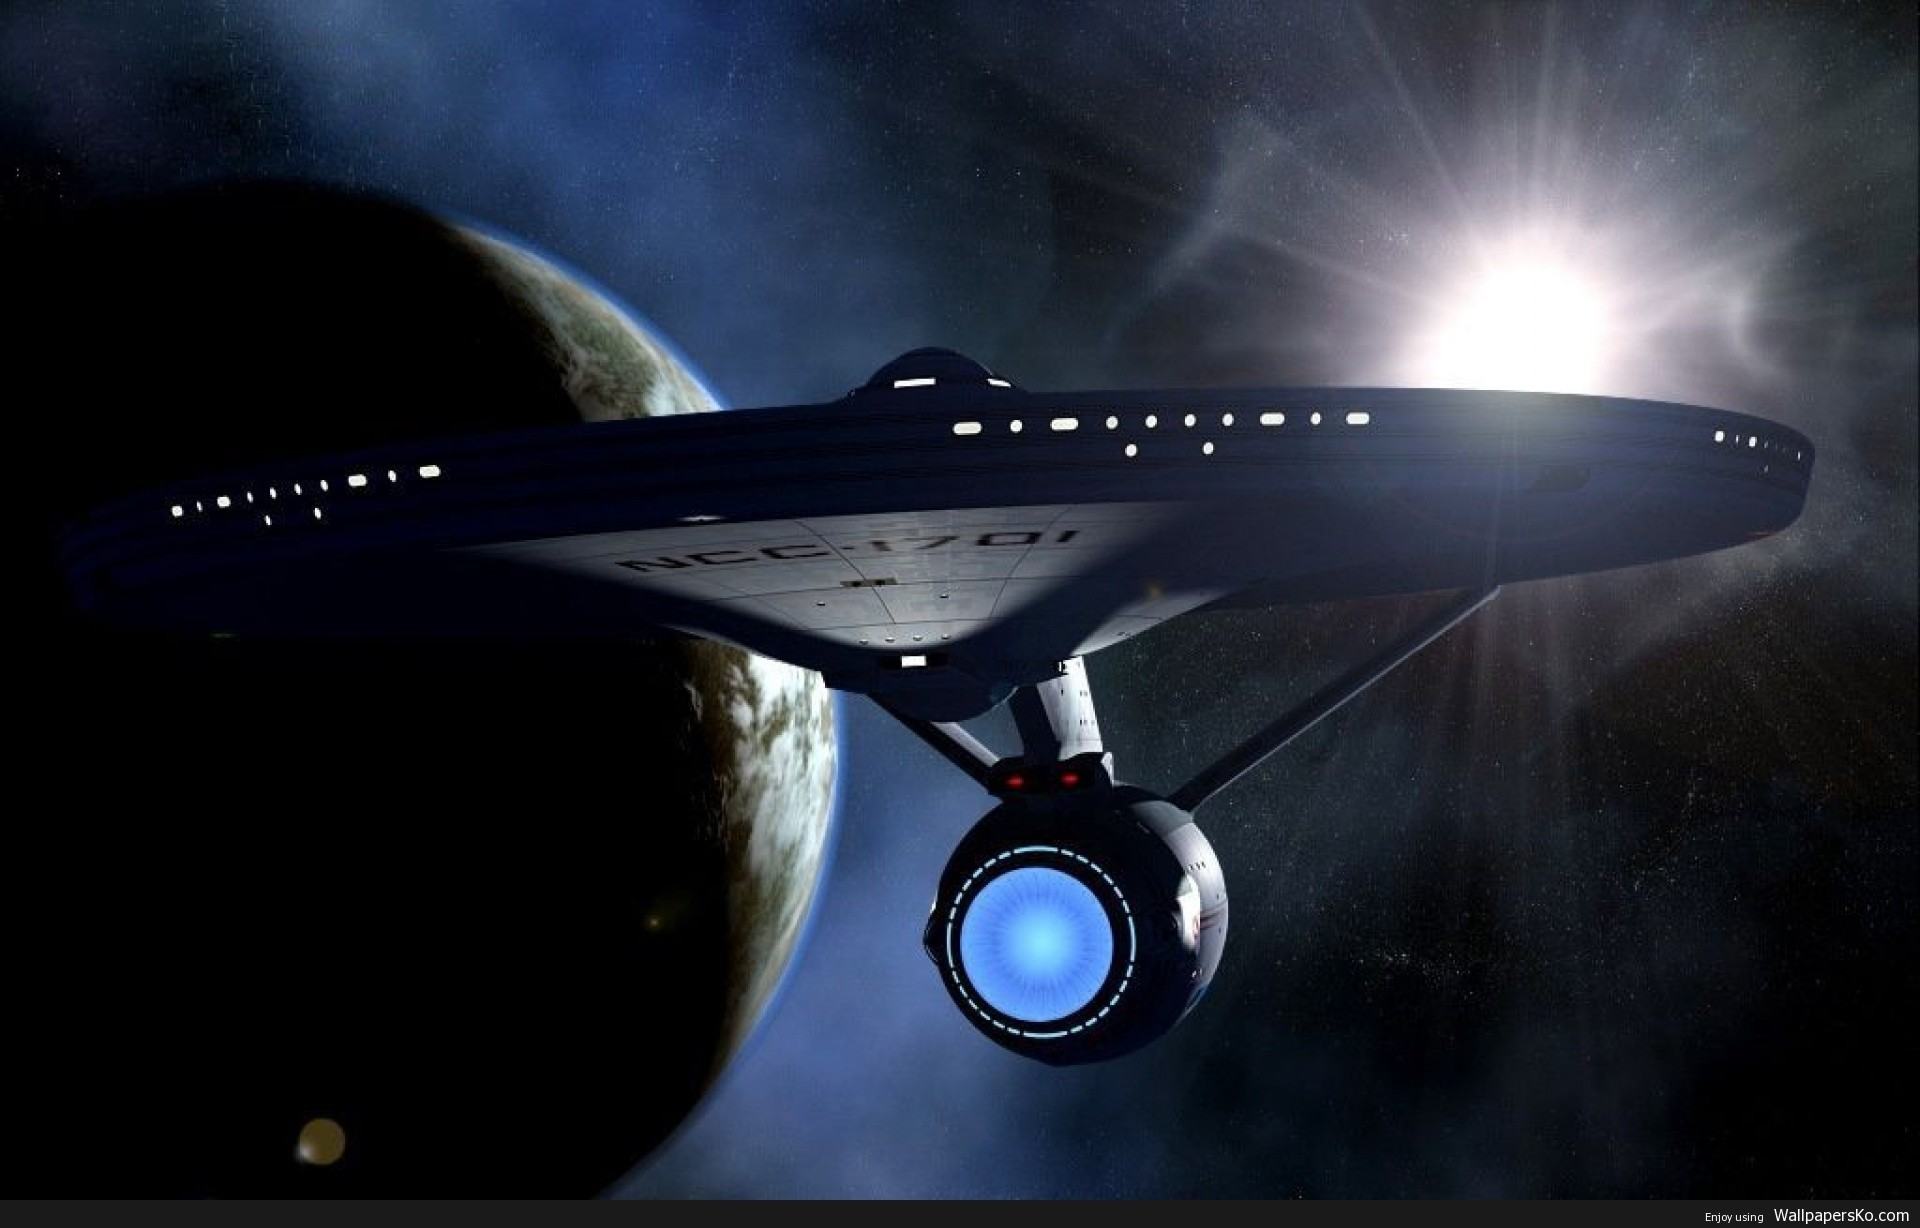 1920x1228 star trek hd wallpaper 1920×1200